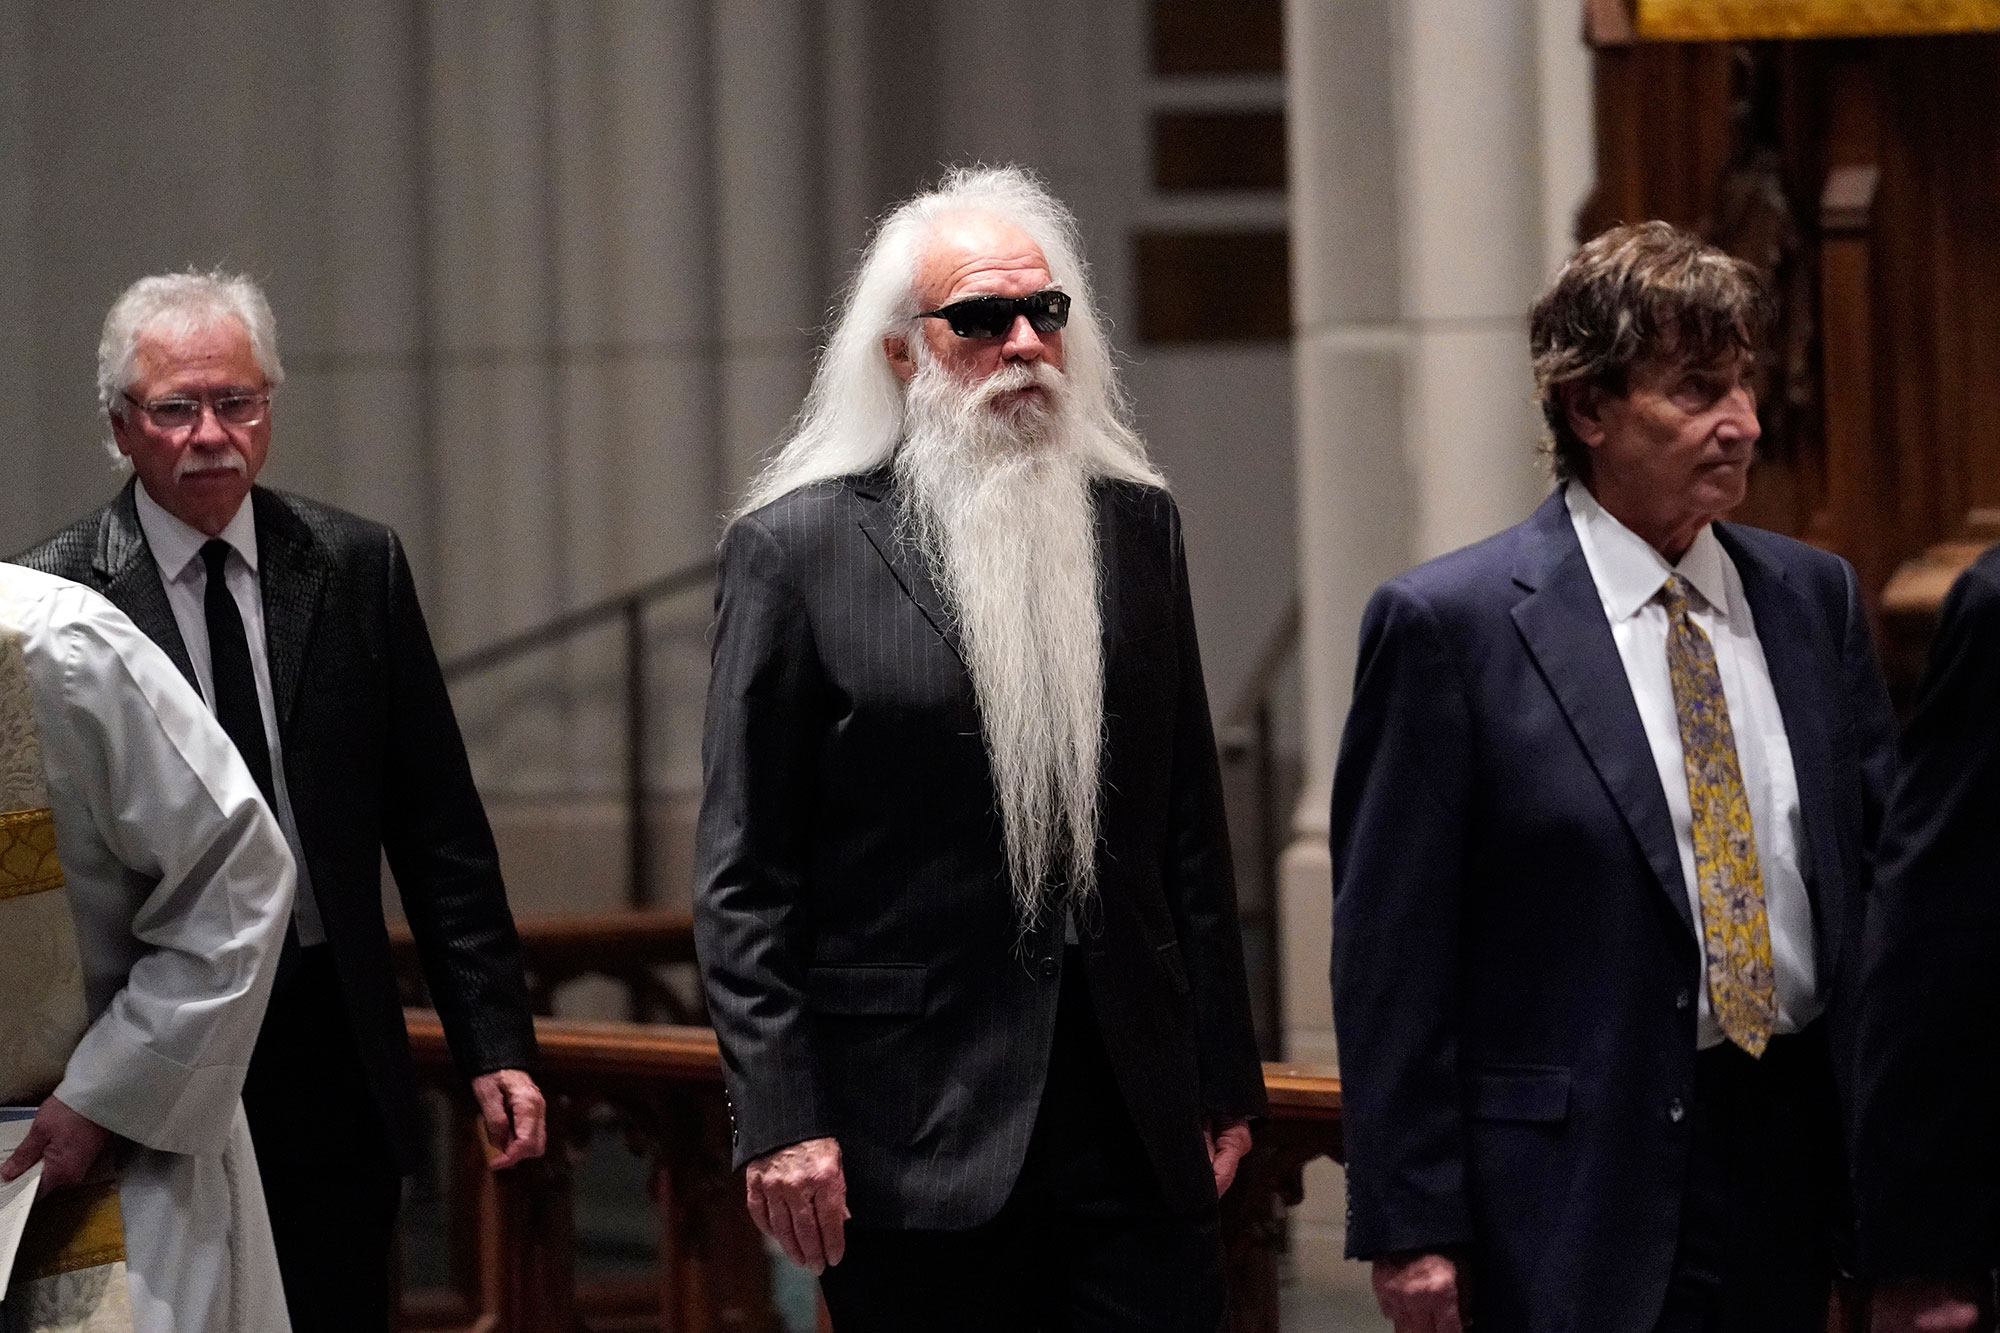 "<div class=""meta image-caption""><div class=""origin-logo origin-image none""><span>none</span></div><span class=""caption-text"">Members of the Oak Ridge Boys arrive for a funeral service for former President George H.W. Bush at St. Martin's Episcopal Church Thursday, Dec. 6, 2018, in Houston. (David J. Phillip, Pool/AP Photo)</span></div>"